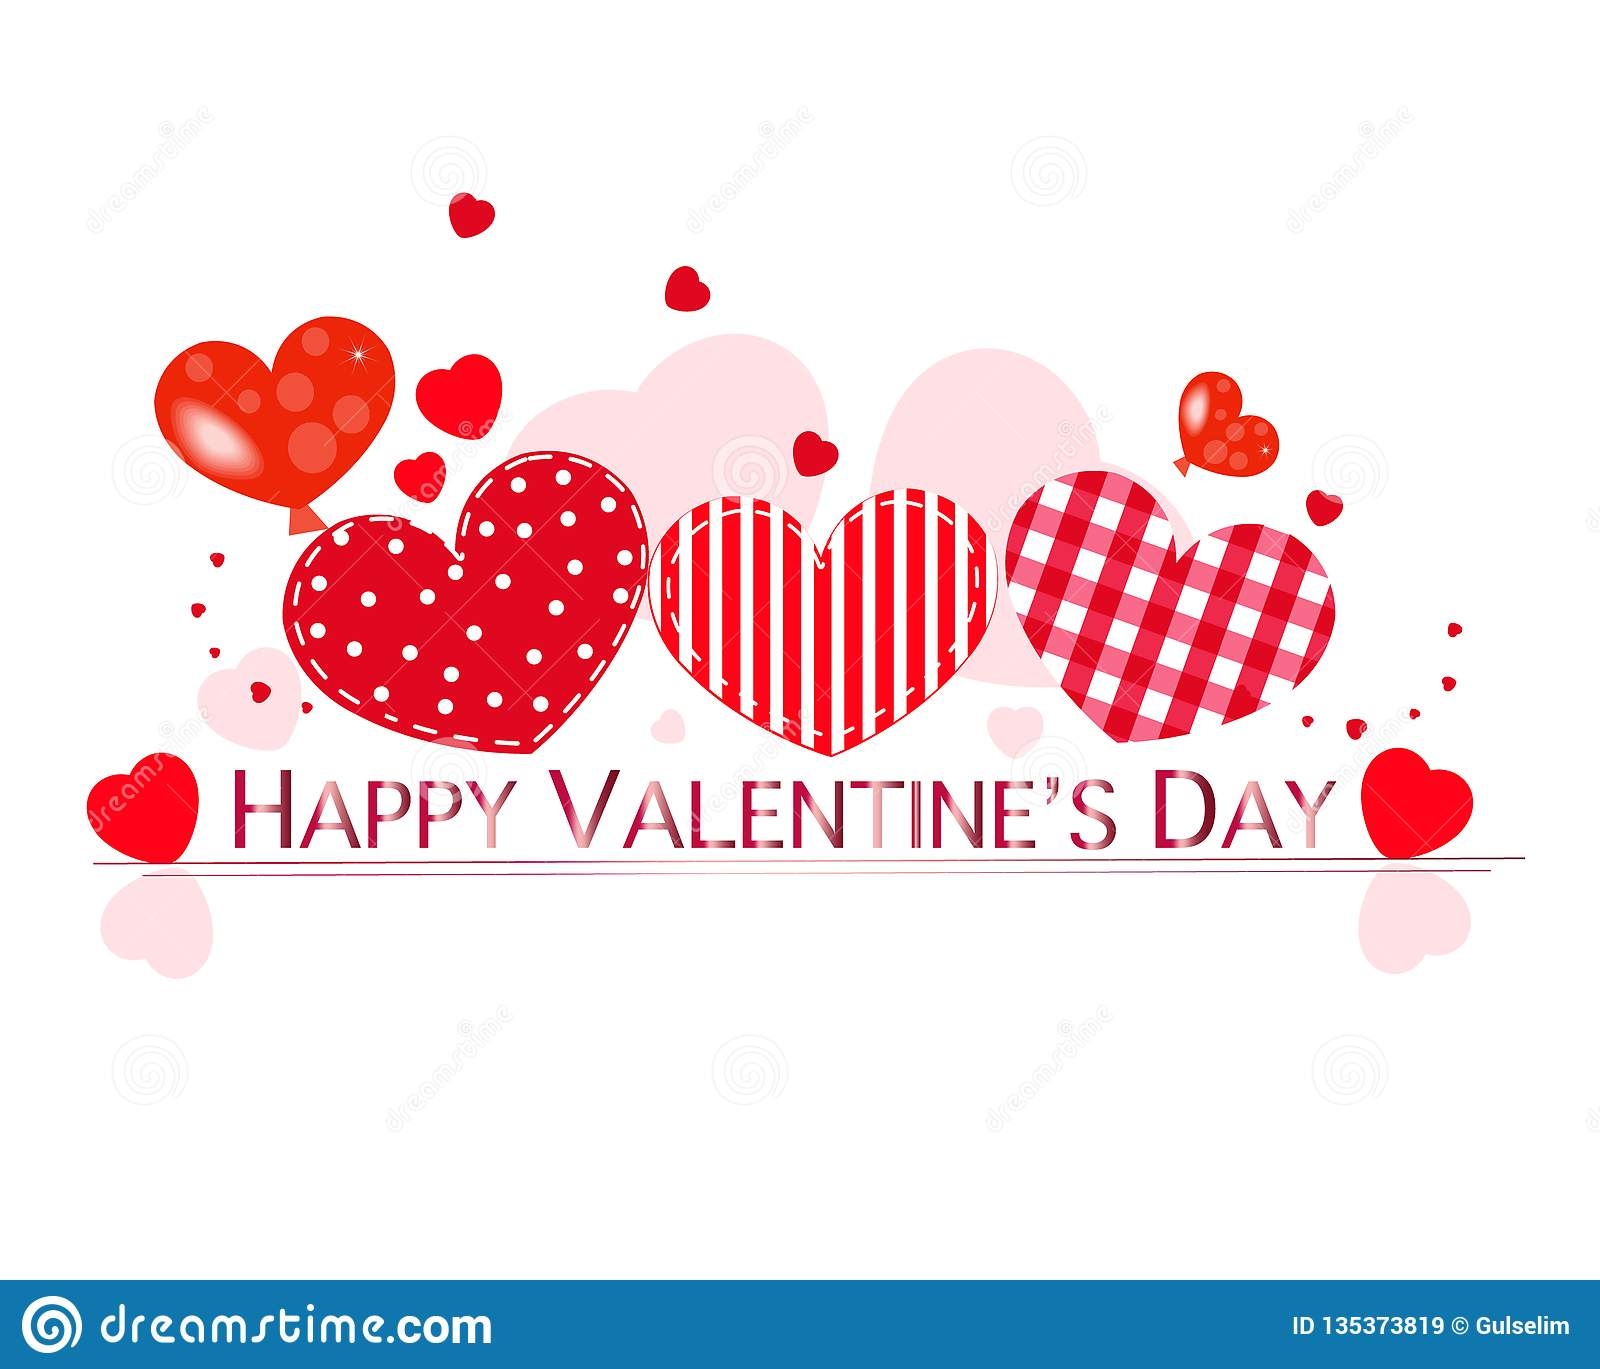 Valentine Hearts And Happy Valentines Day Text Valentines Day Wallpaper Stock Illustration Illustration Of Background Lettering 135373819